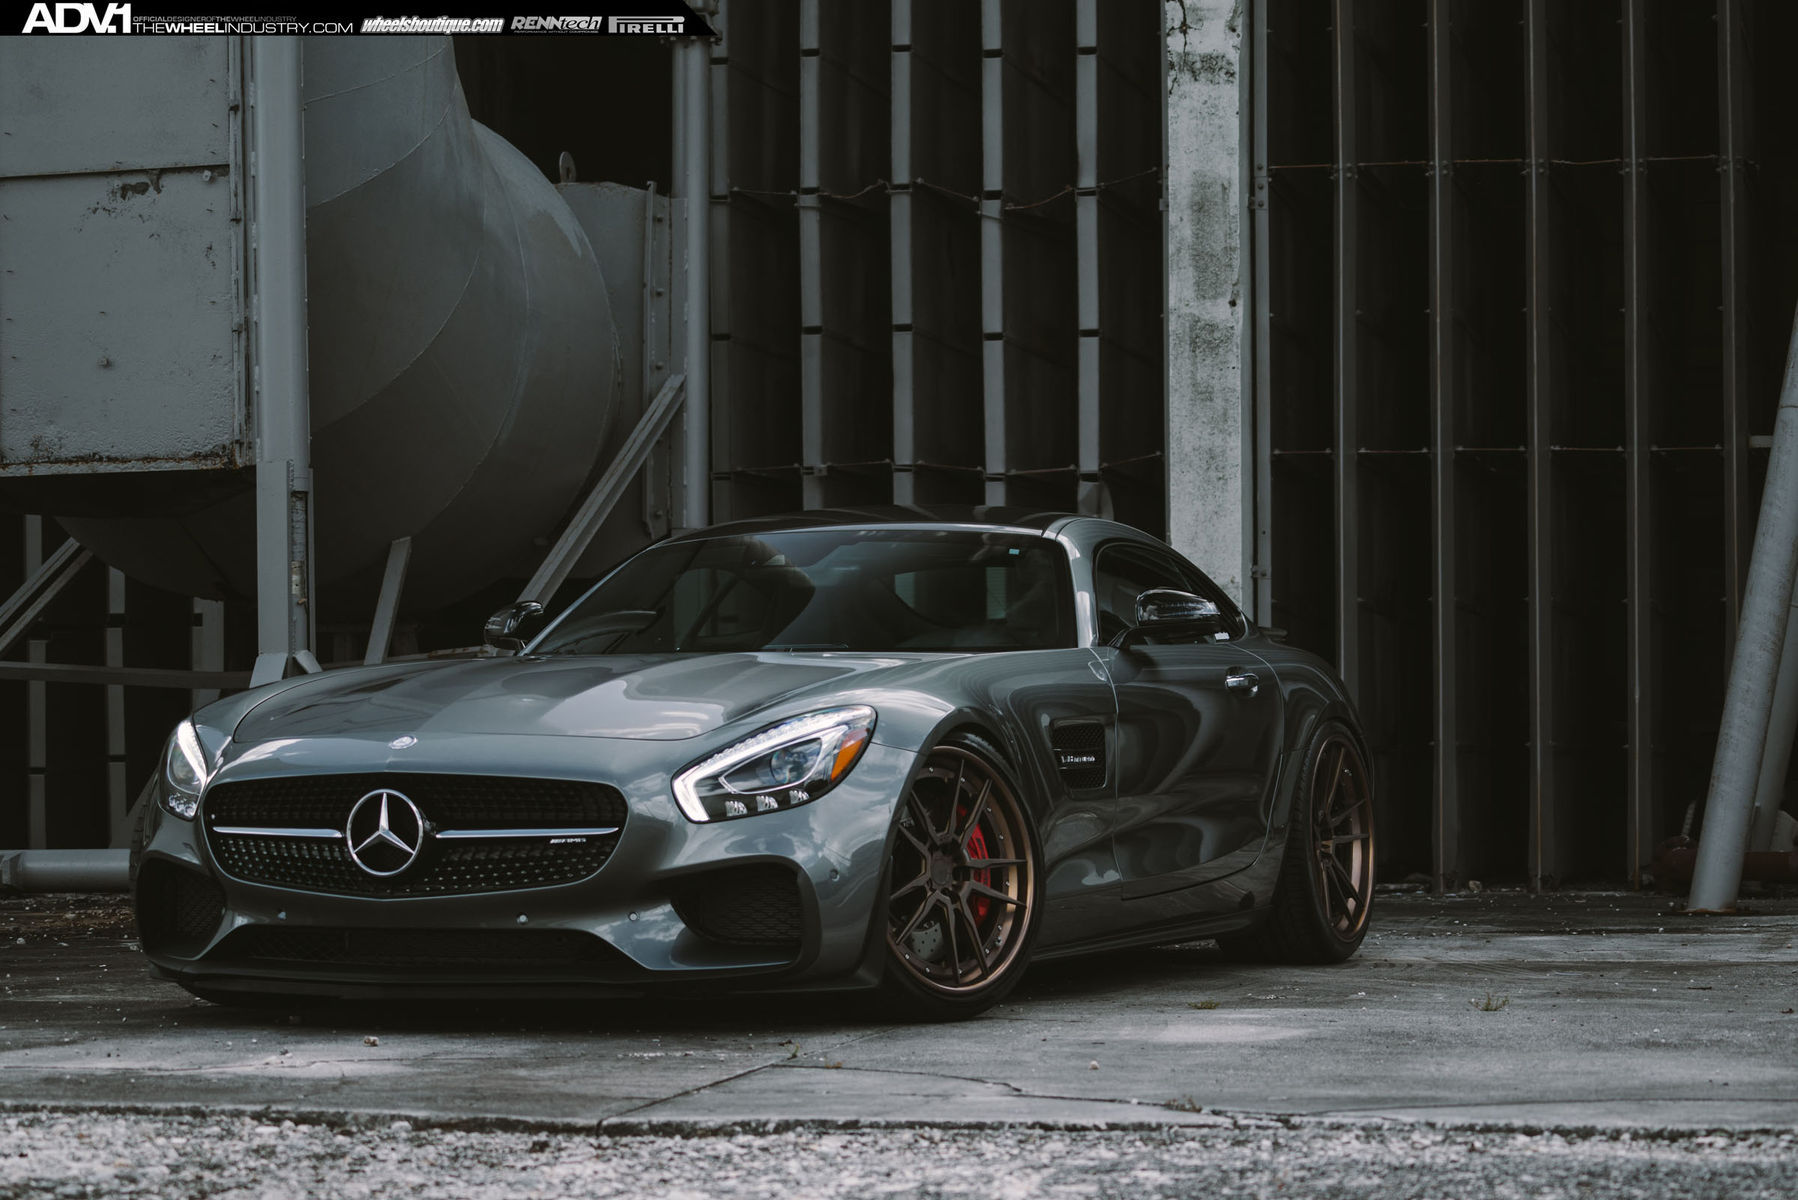 2016 Mercedes-Benz  | ADV1 Mercedes AMG GT-S Edition 1